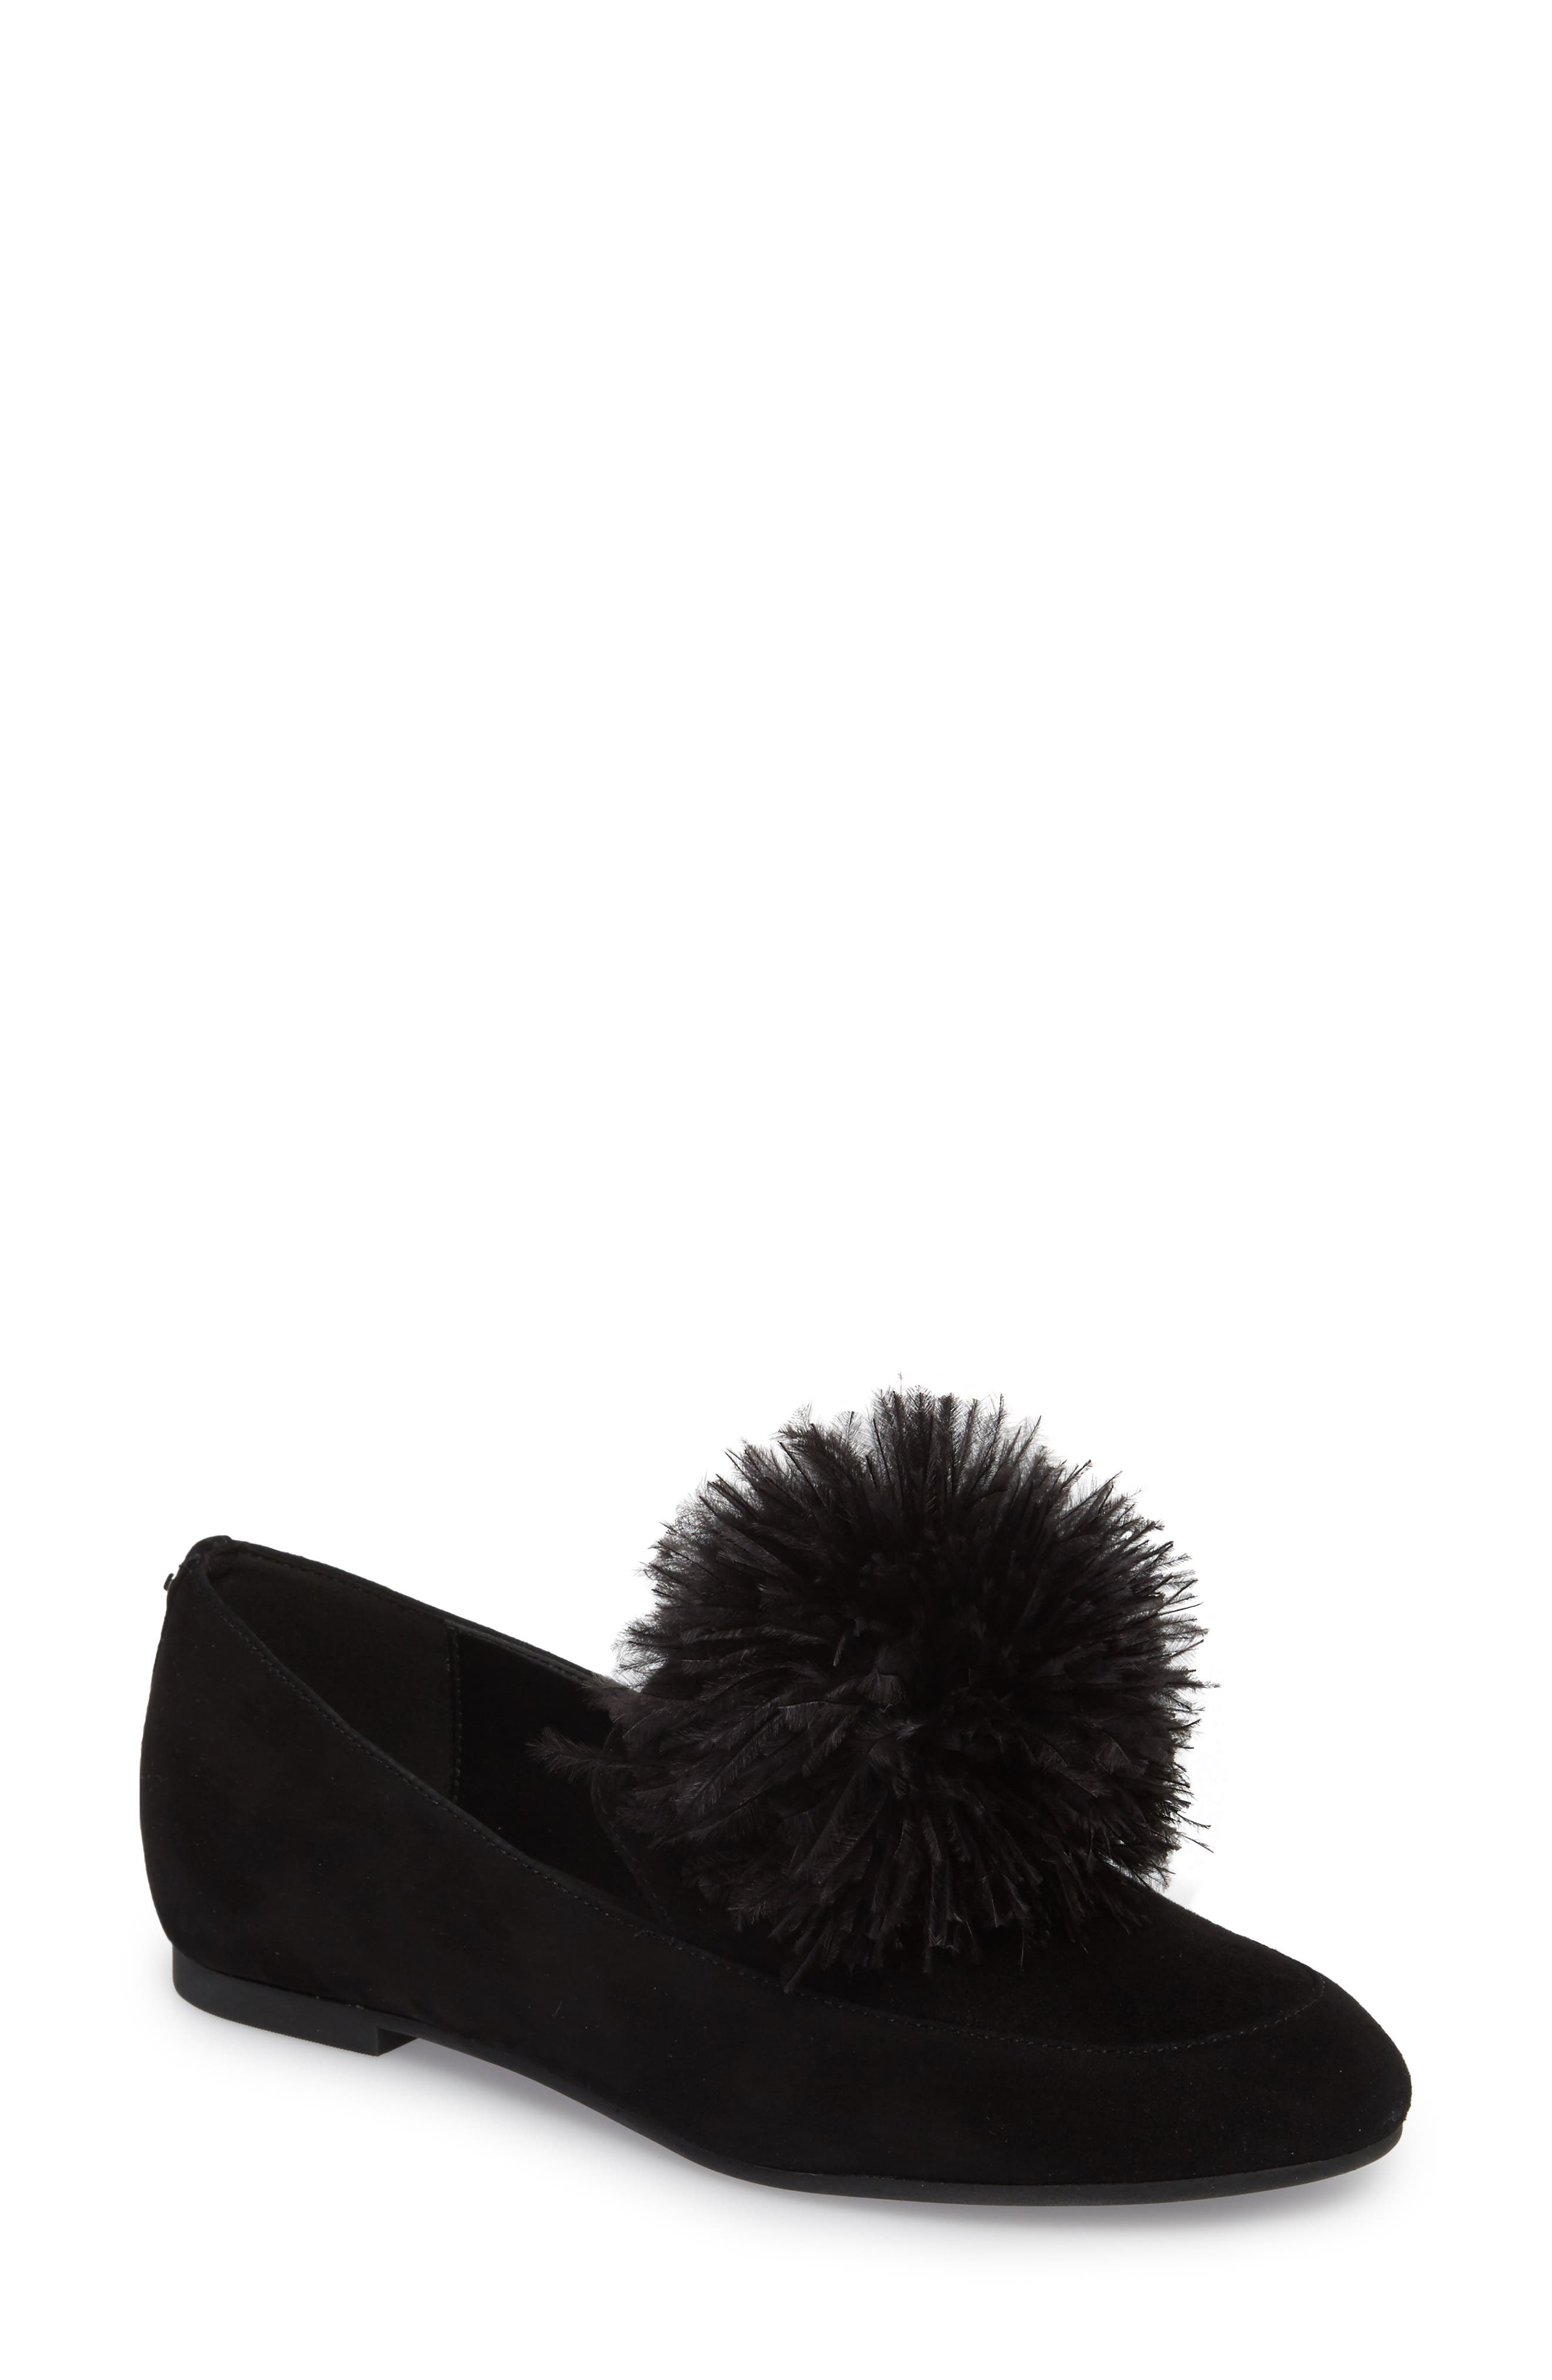 Fara Feather Pom Loafer,                         Main,                         color, 001